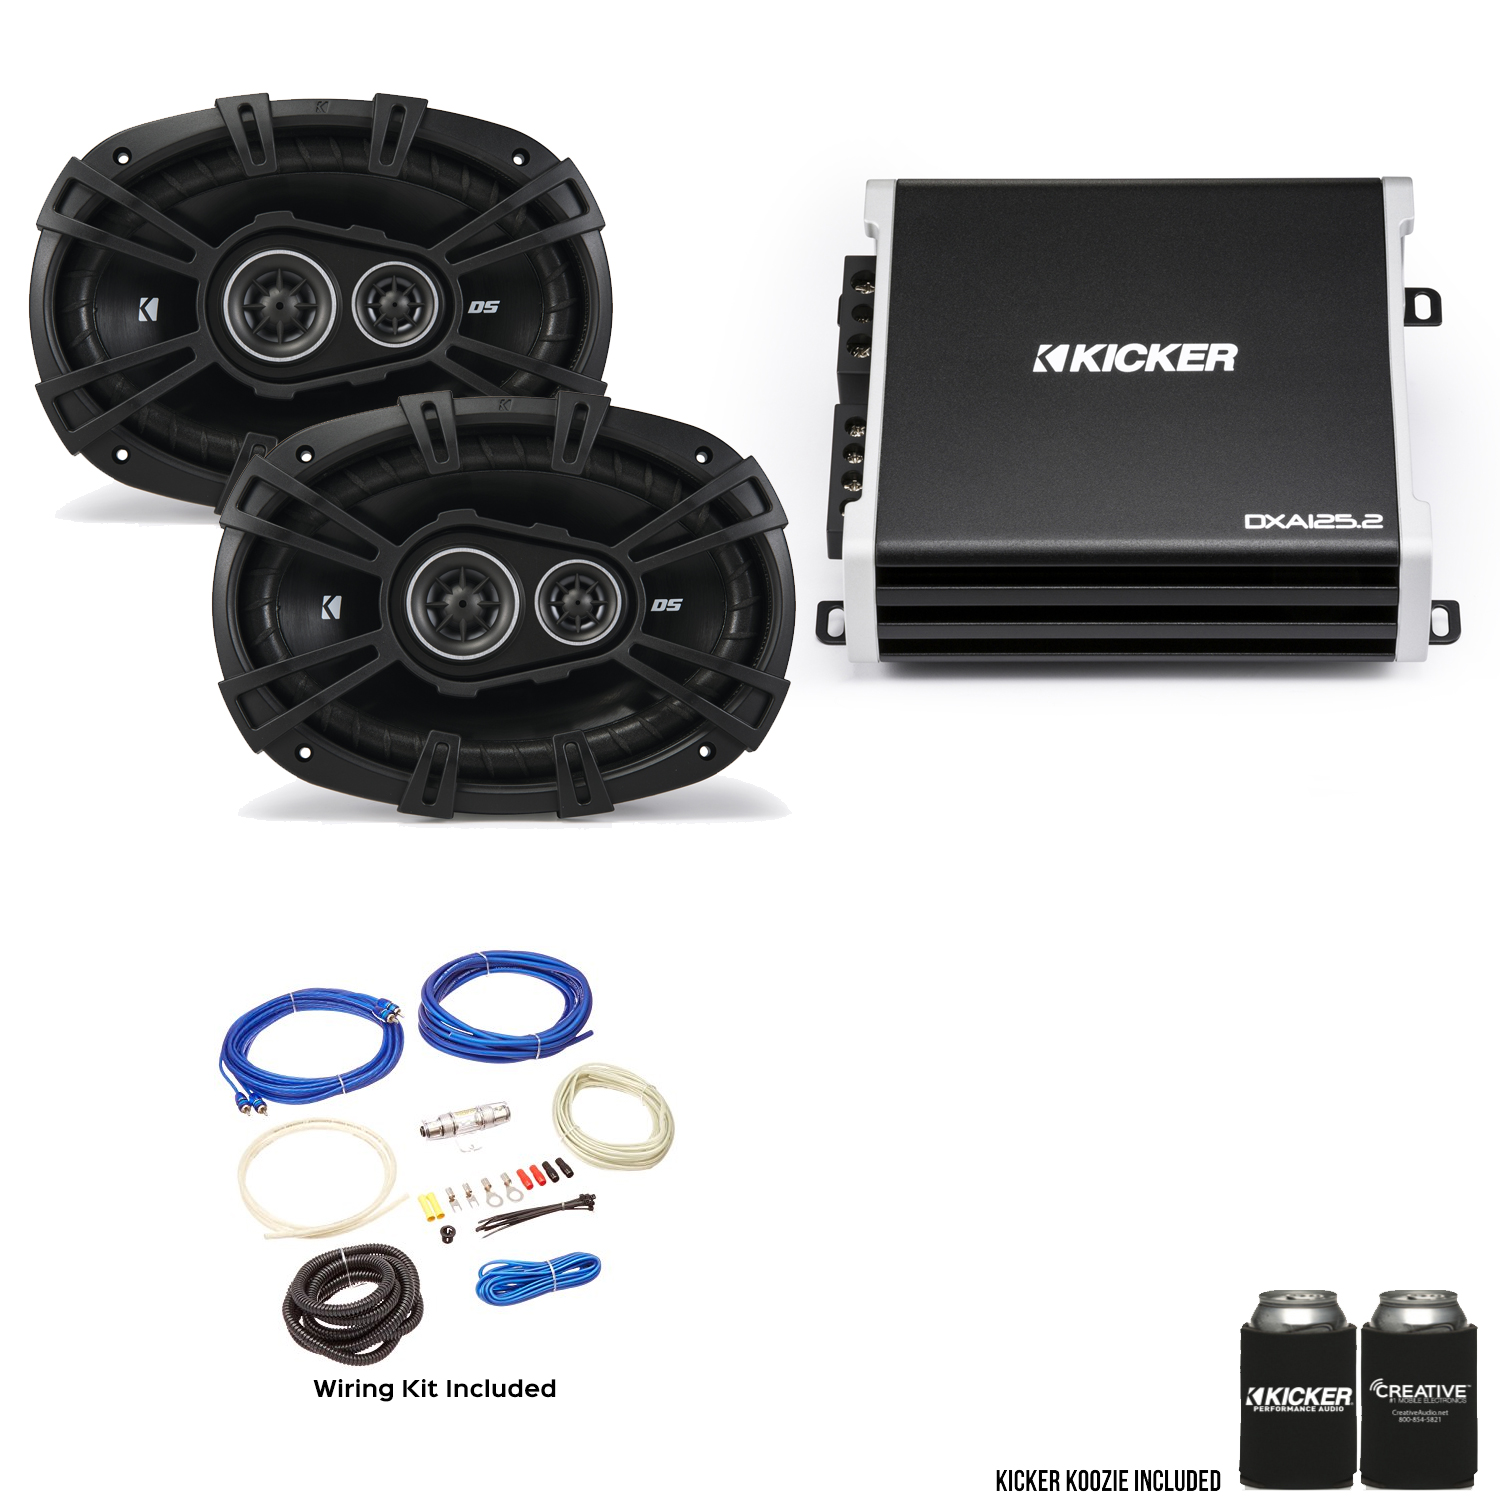 "Details about Kicker 43DSC69304 6x9"" DS-Series Speakers with 43DXA1252 on kicker shocks kit, kicker wiring-diagram, kicker wiring guide, kicker repair kit, kicker motor kit, kicker wiring specs, kicker amplifier, kicker mounts,"